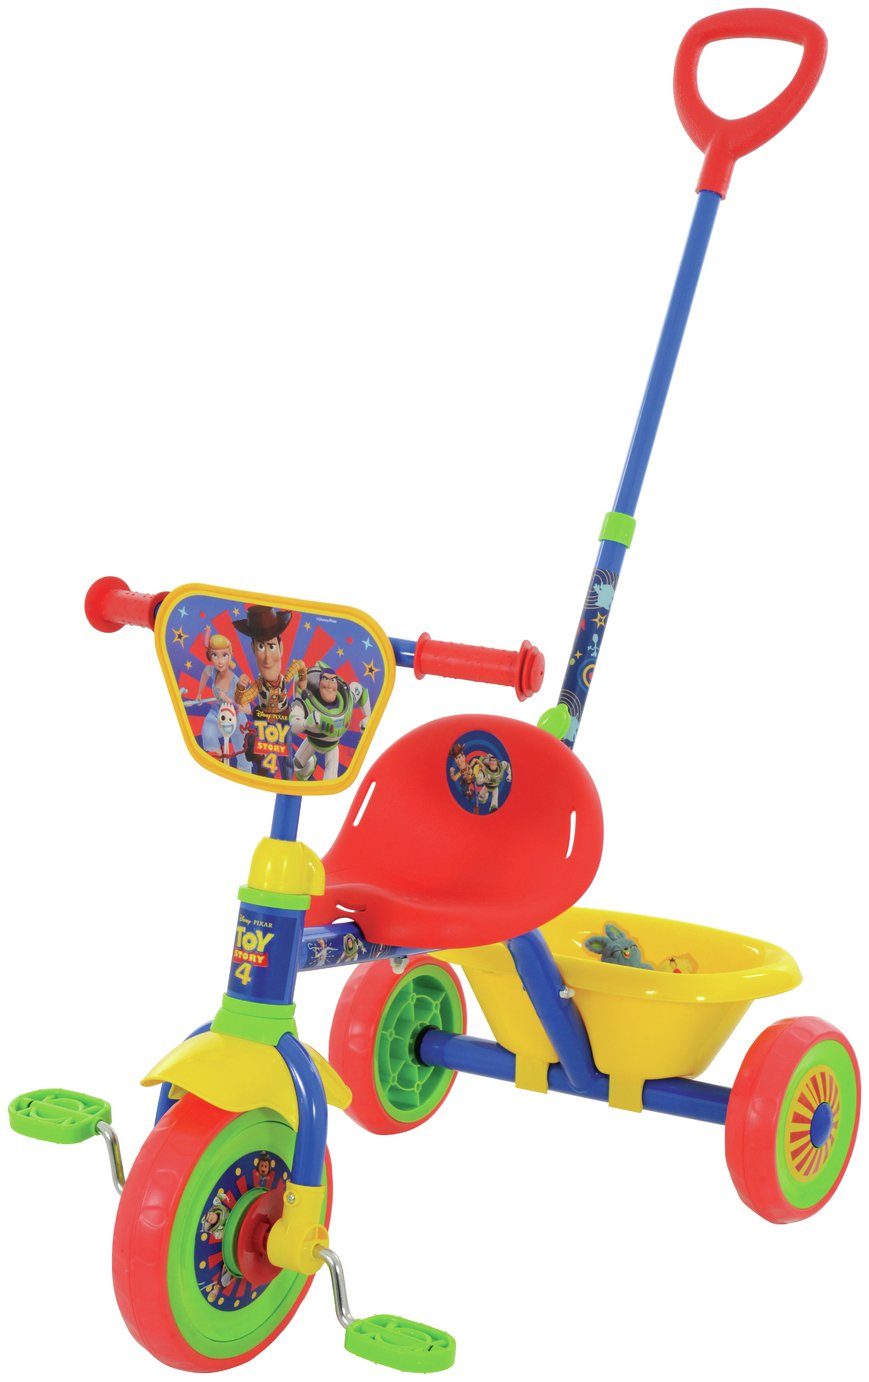 Disney Toy Story 4 My First Trike